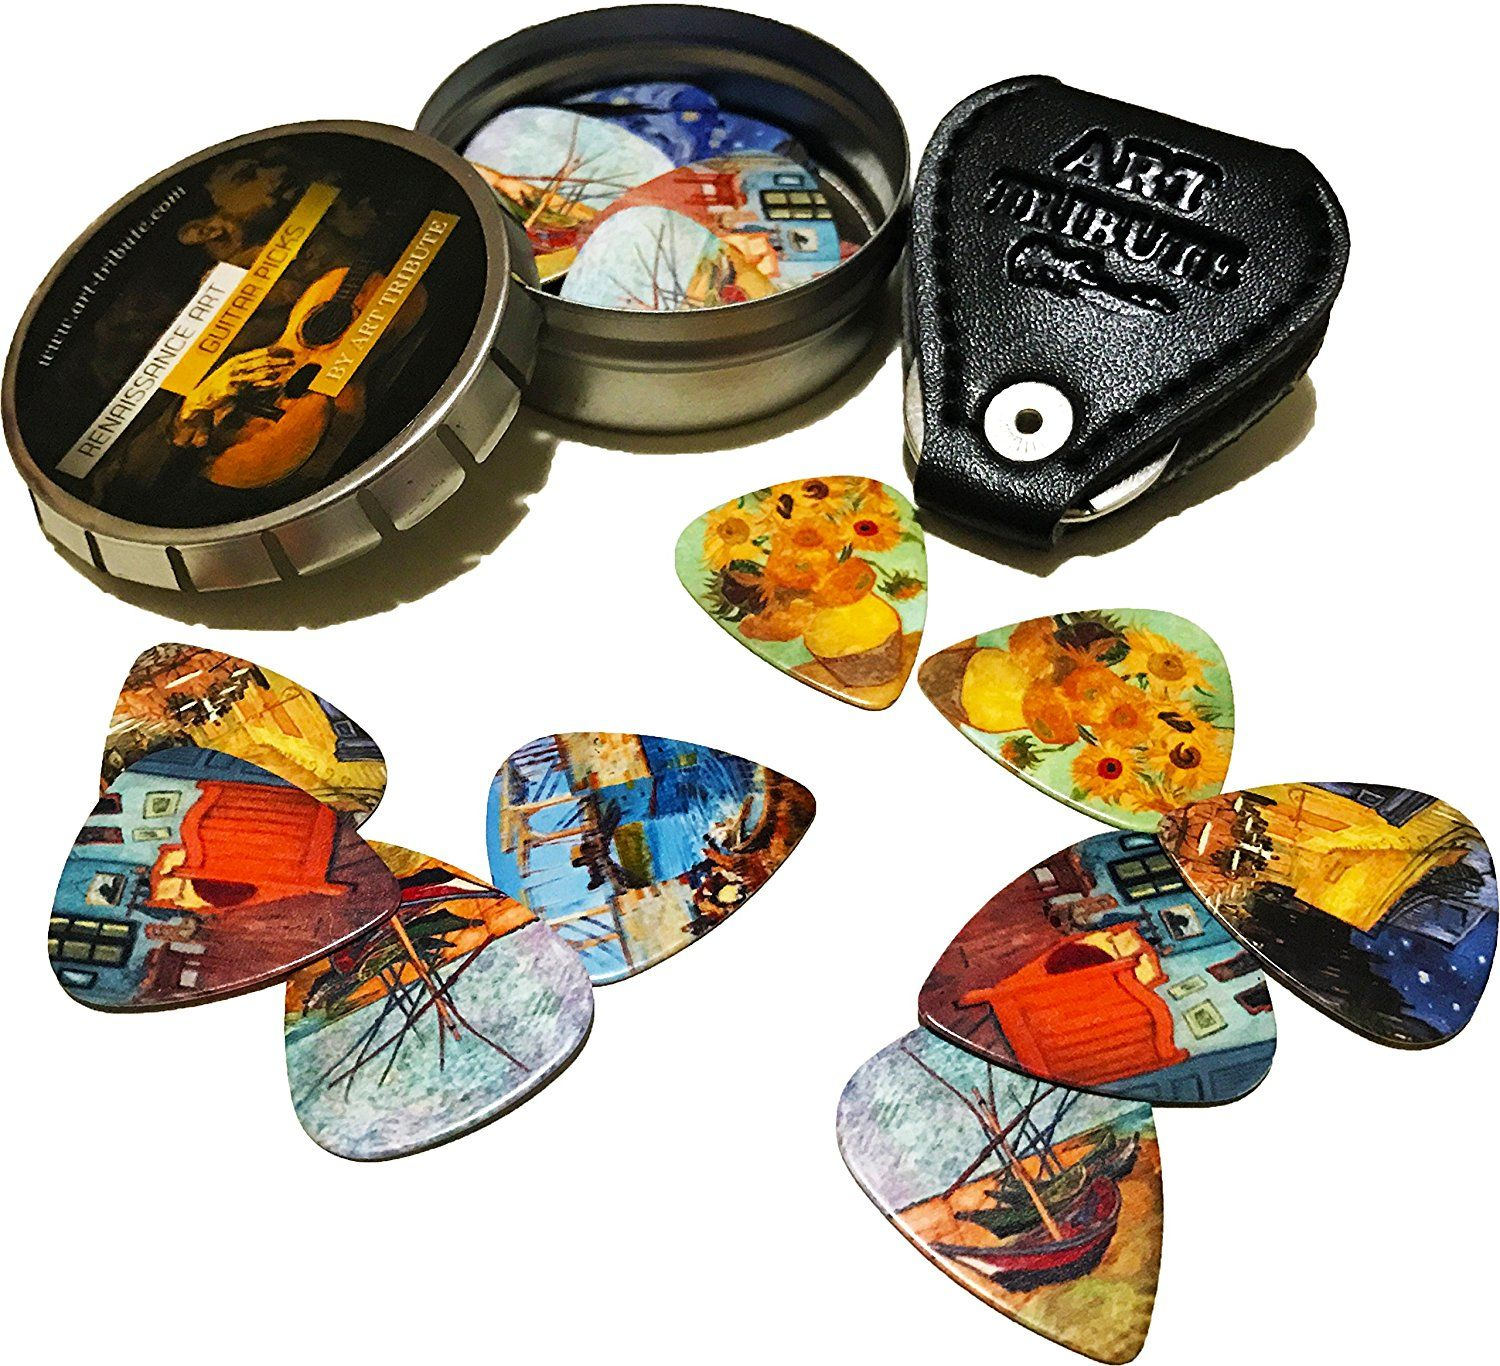 Unique Stocking Stuffer For Guitar Player Limited Time Deal Celluloid Medium 12 Pack in A Tin Box Picks Holder Vincent Van Gogh Guitar Picks Complete Gift Set For Guitarist